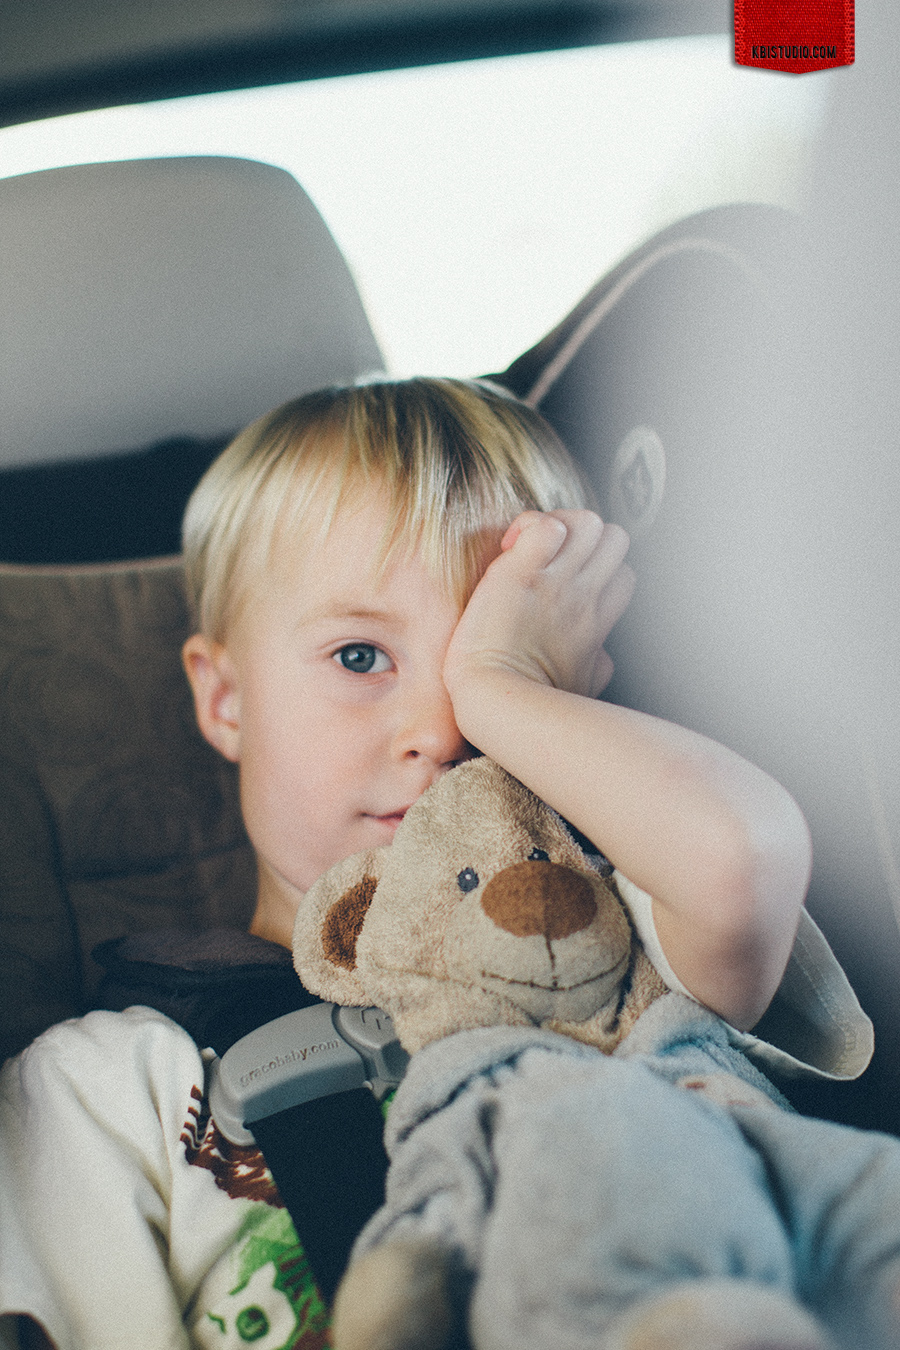 Boy with teddy bear wakes up after nap in his car seat